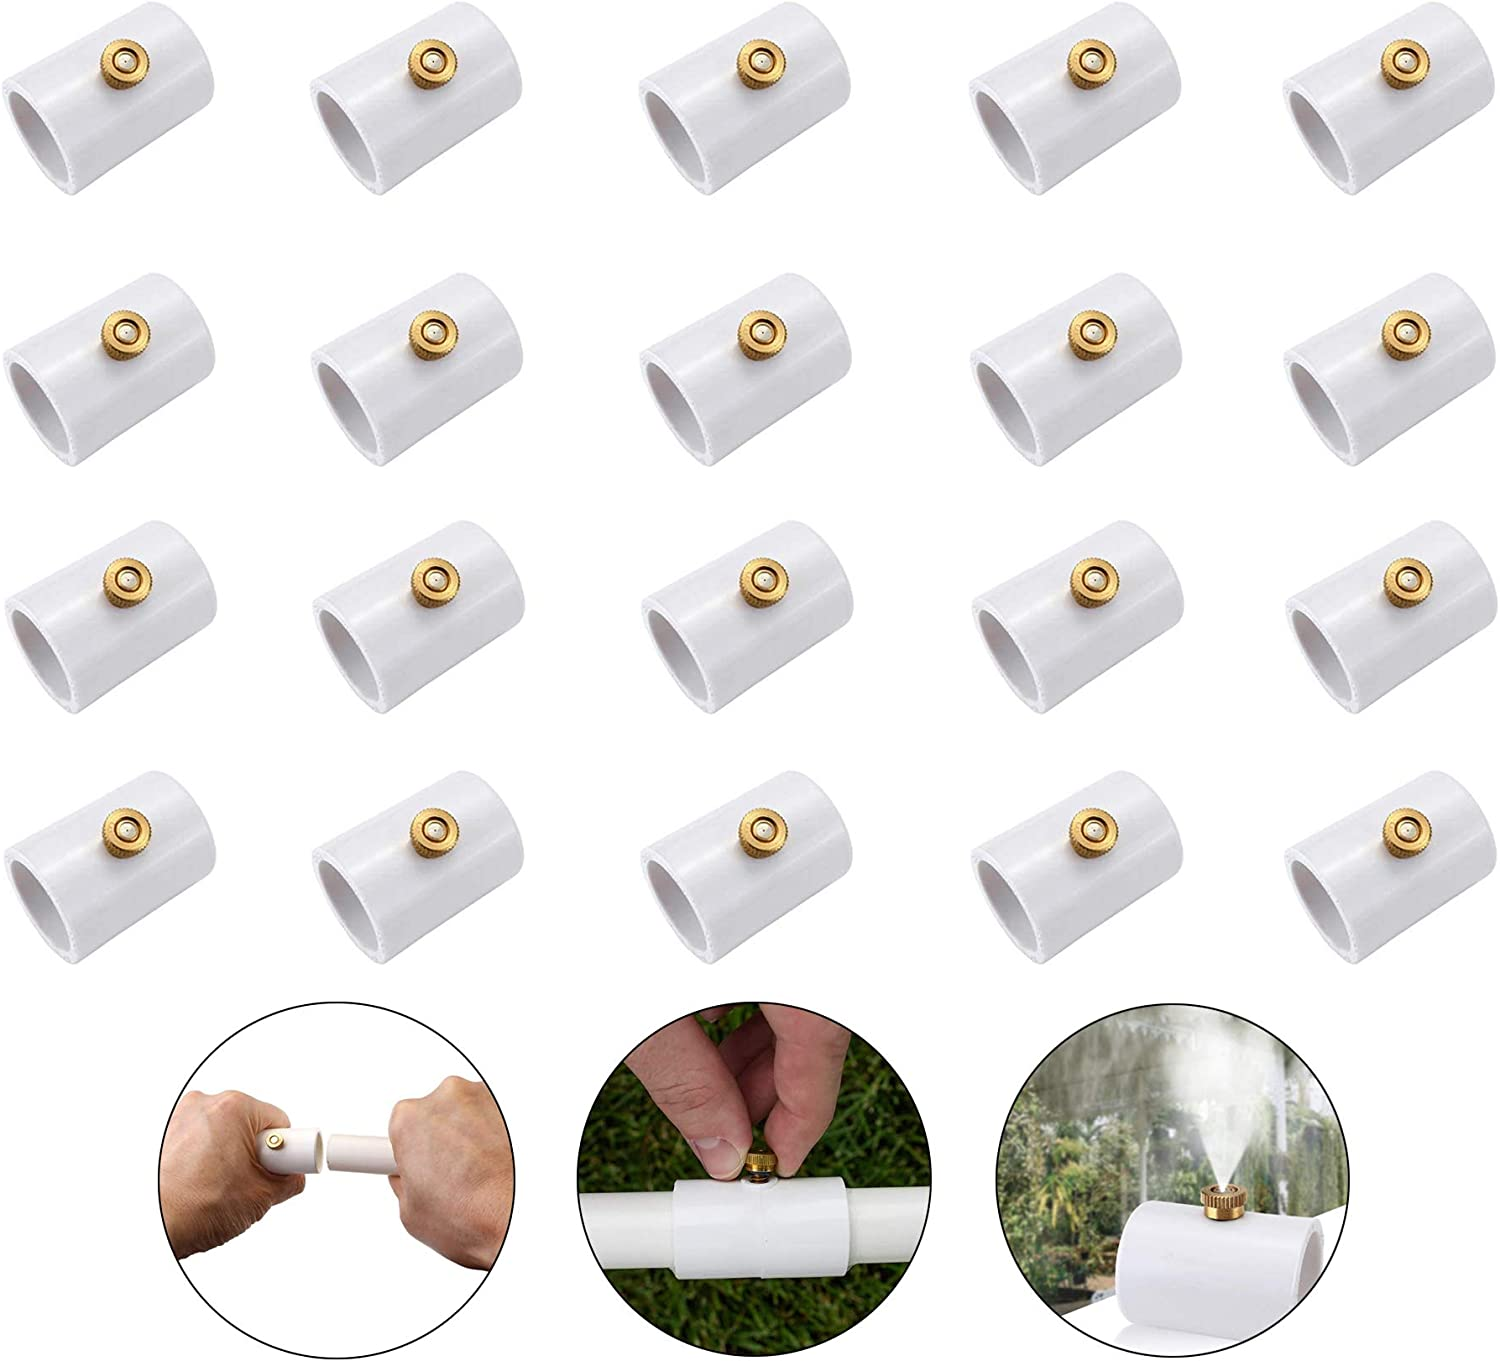 20 Pack Misters for Outside Patio, Mister Nozzles for Misting Cooling System, 1/2 Inch PVC Splitter with Brass Mist Nozzle, Misters for Outside Patio